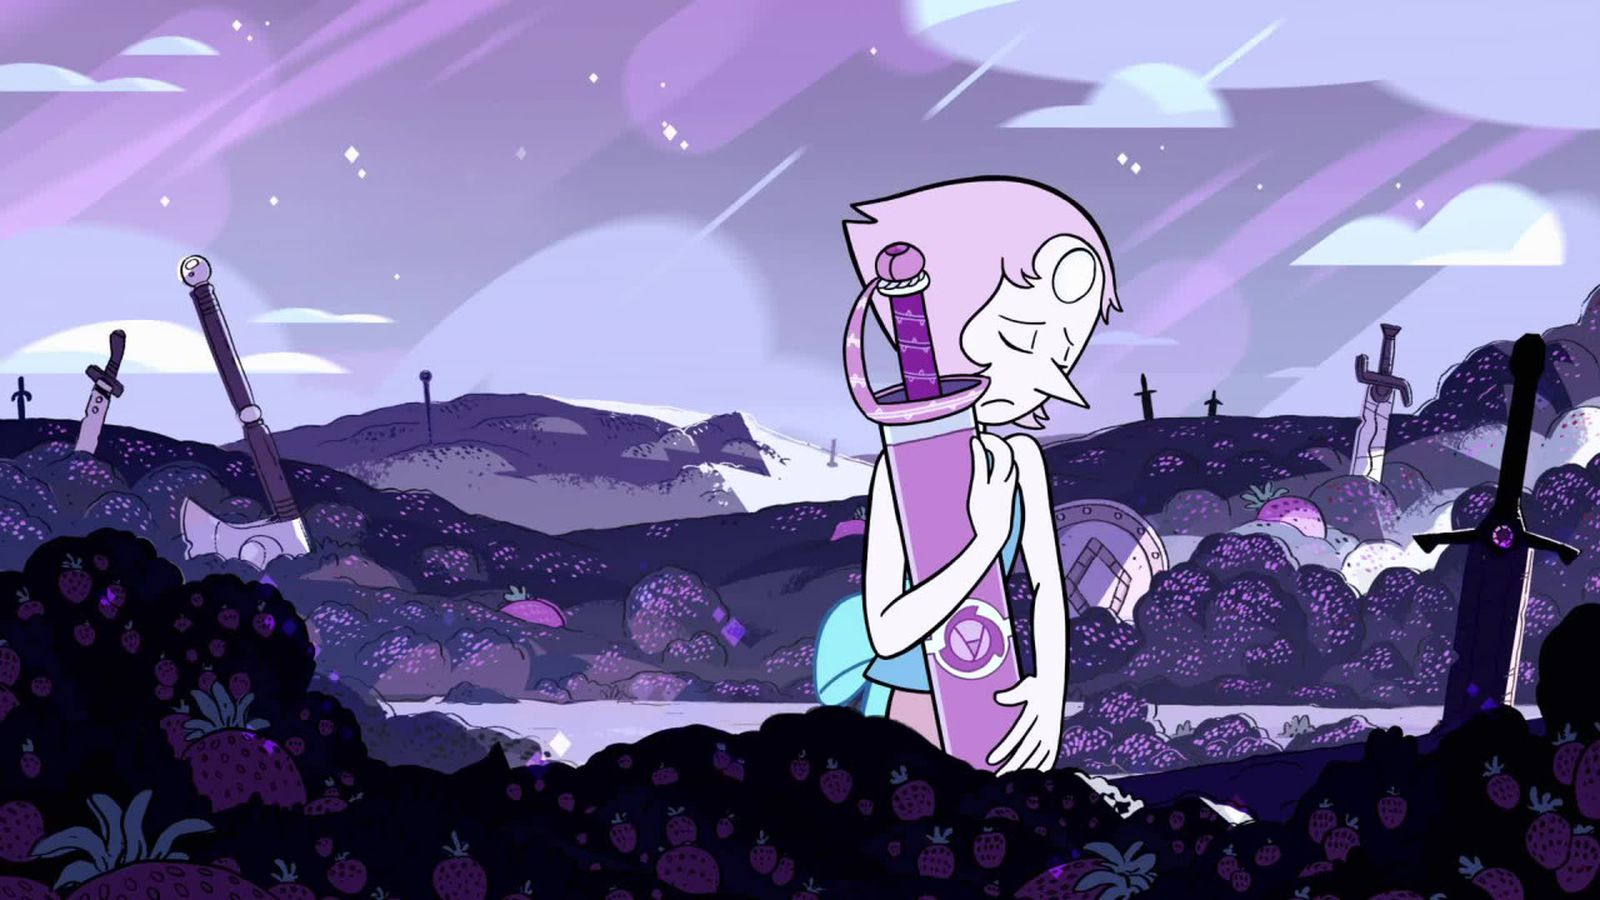 Dream About Wallpaper Falling Off Dead Parents Steven Universe And Processing Grief Polygon